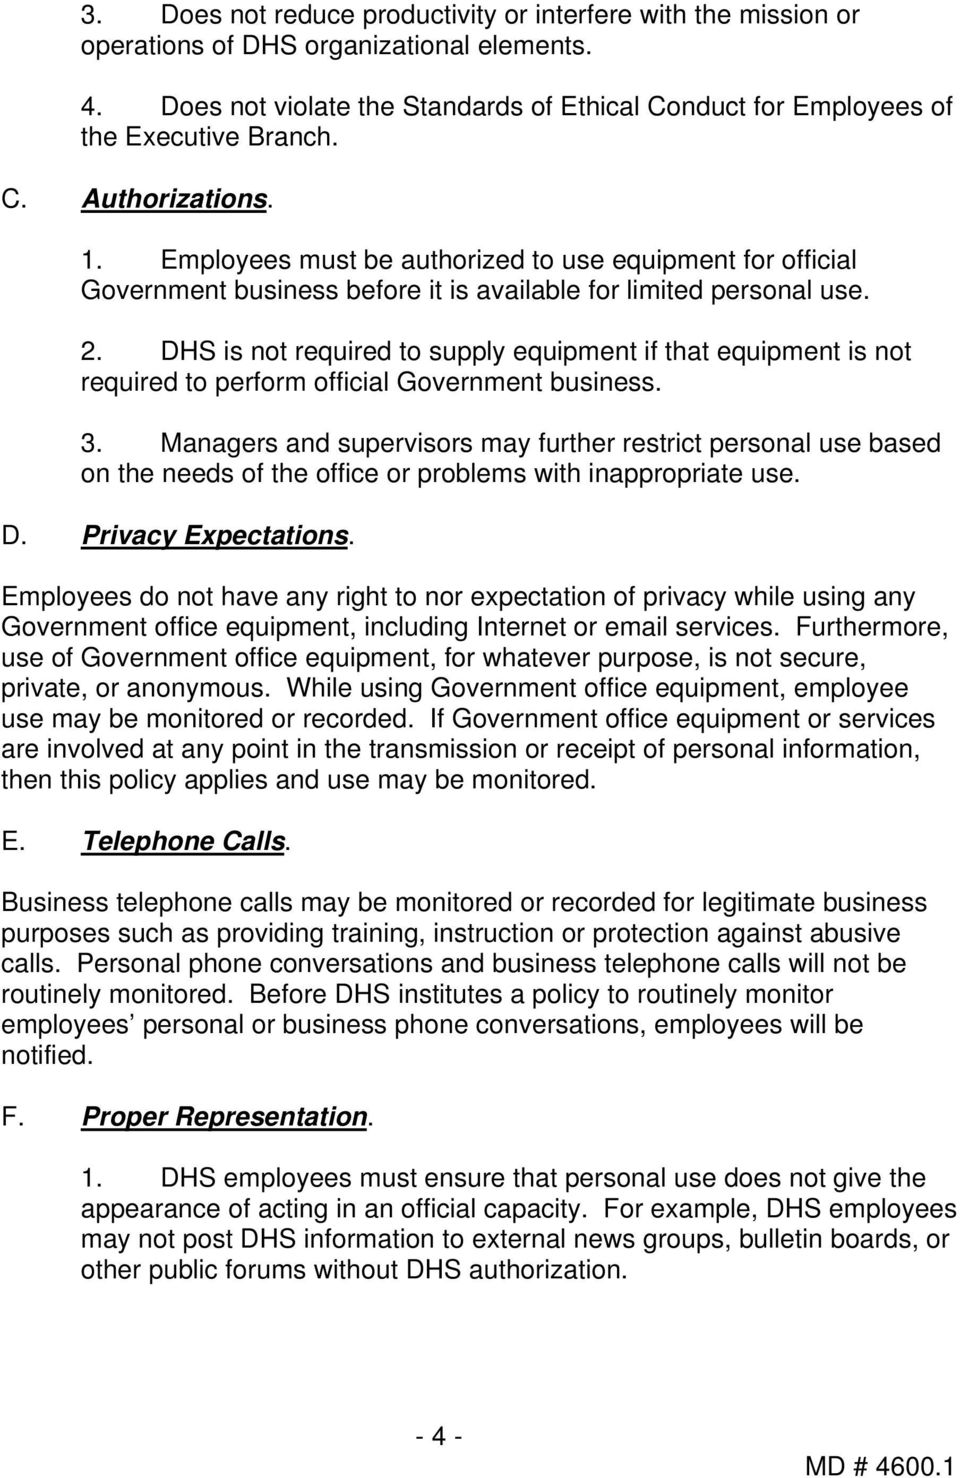 DHS is not required to supply equipment if that equipment is not required to perform official Government business. 3.